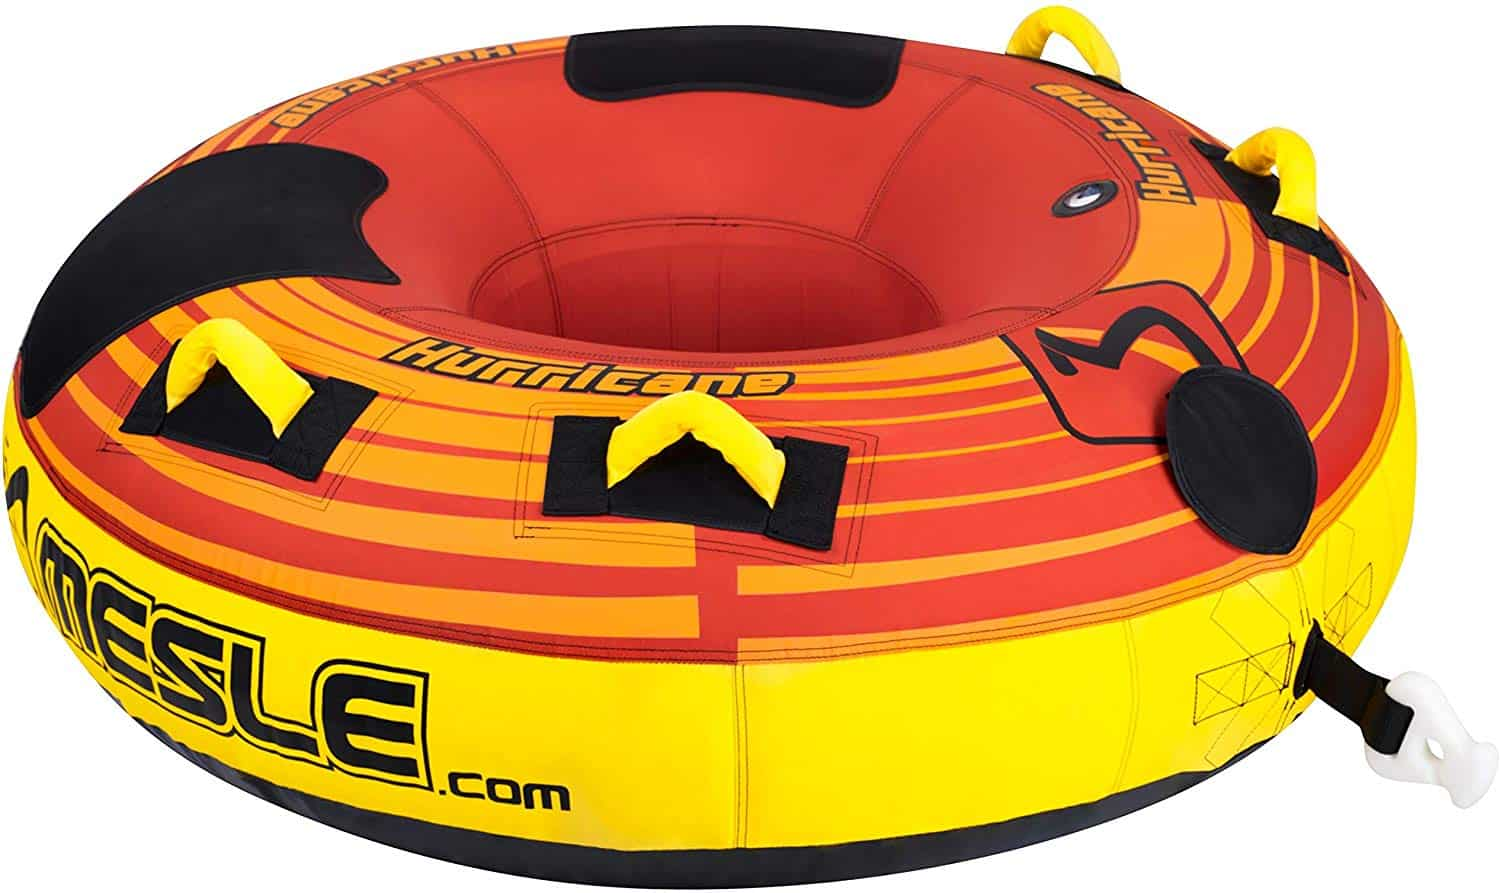 extra reinforced professional pool tube for the rear boat